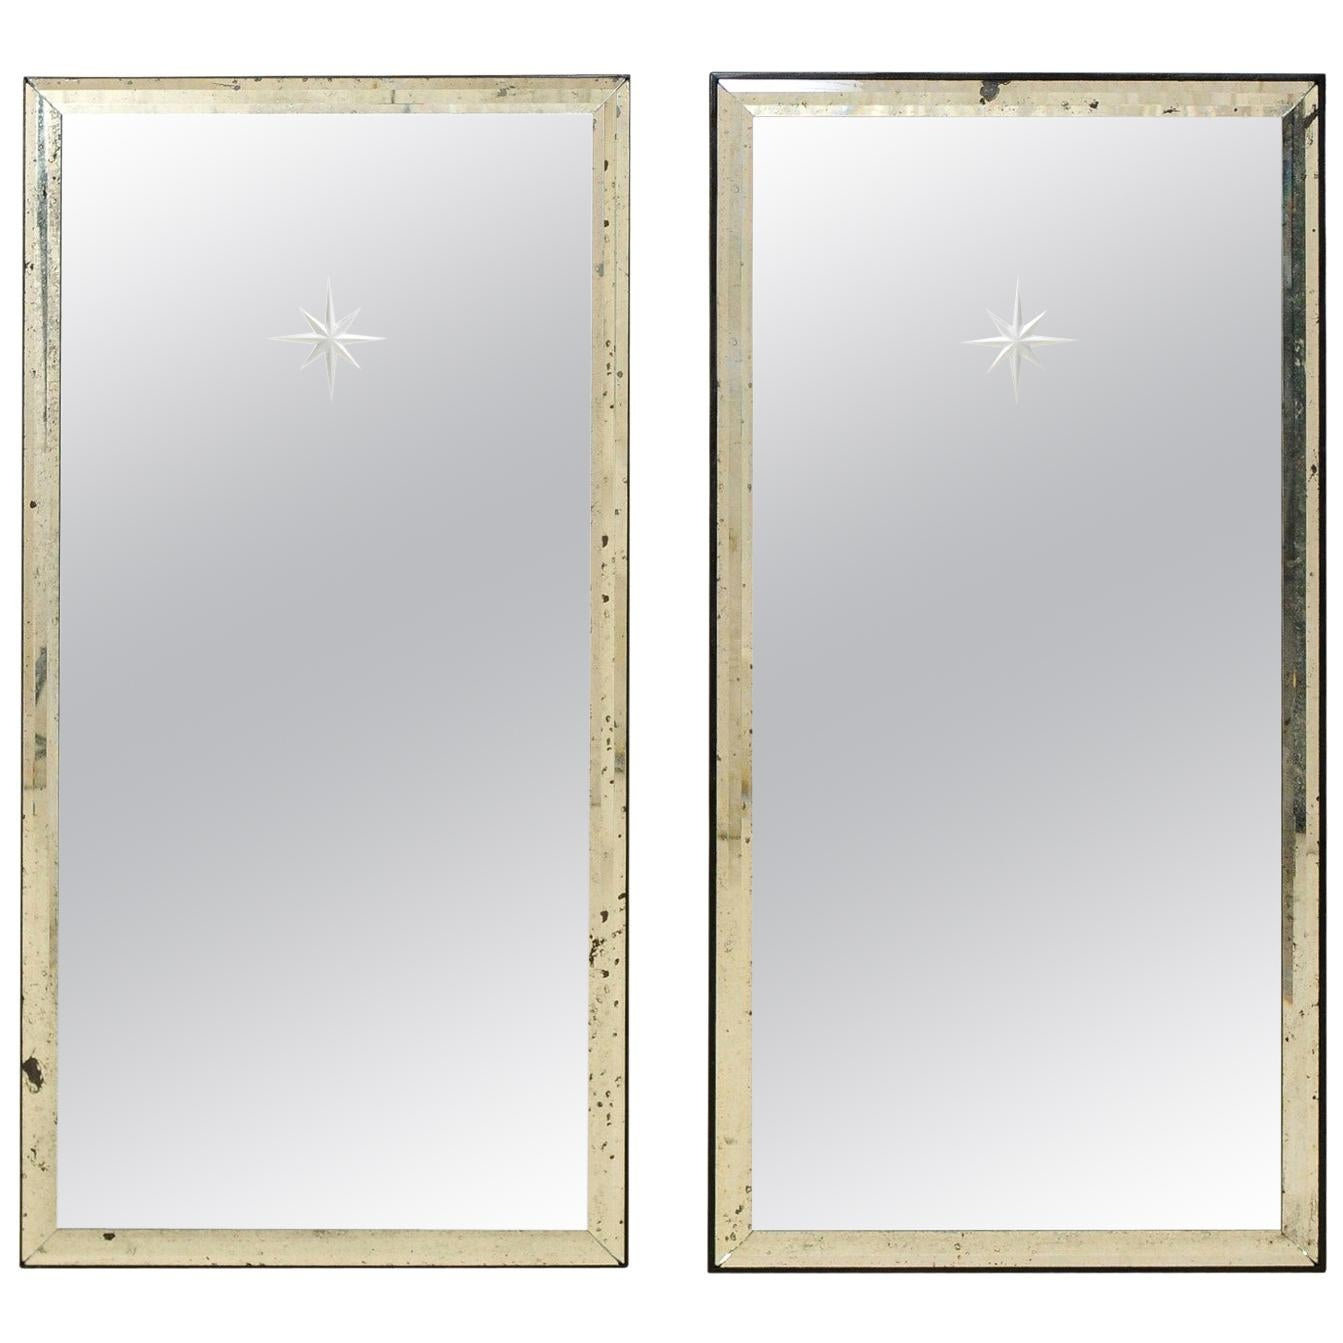 A Pair of Artisan Hand-Crafted Silver Églomisé Starburst Mirrors, 4 Ft Tall